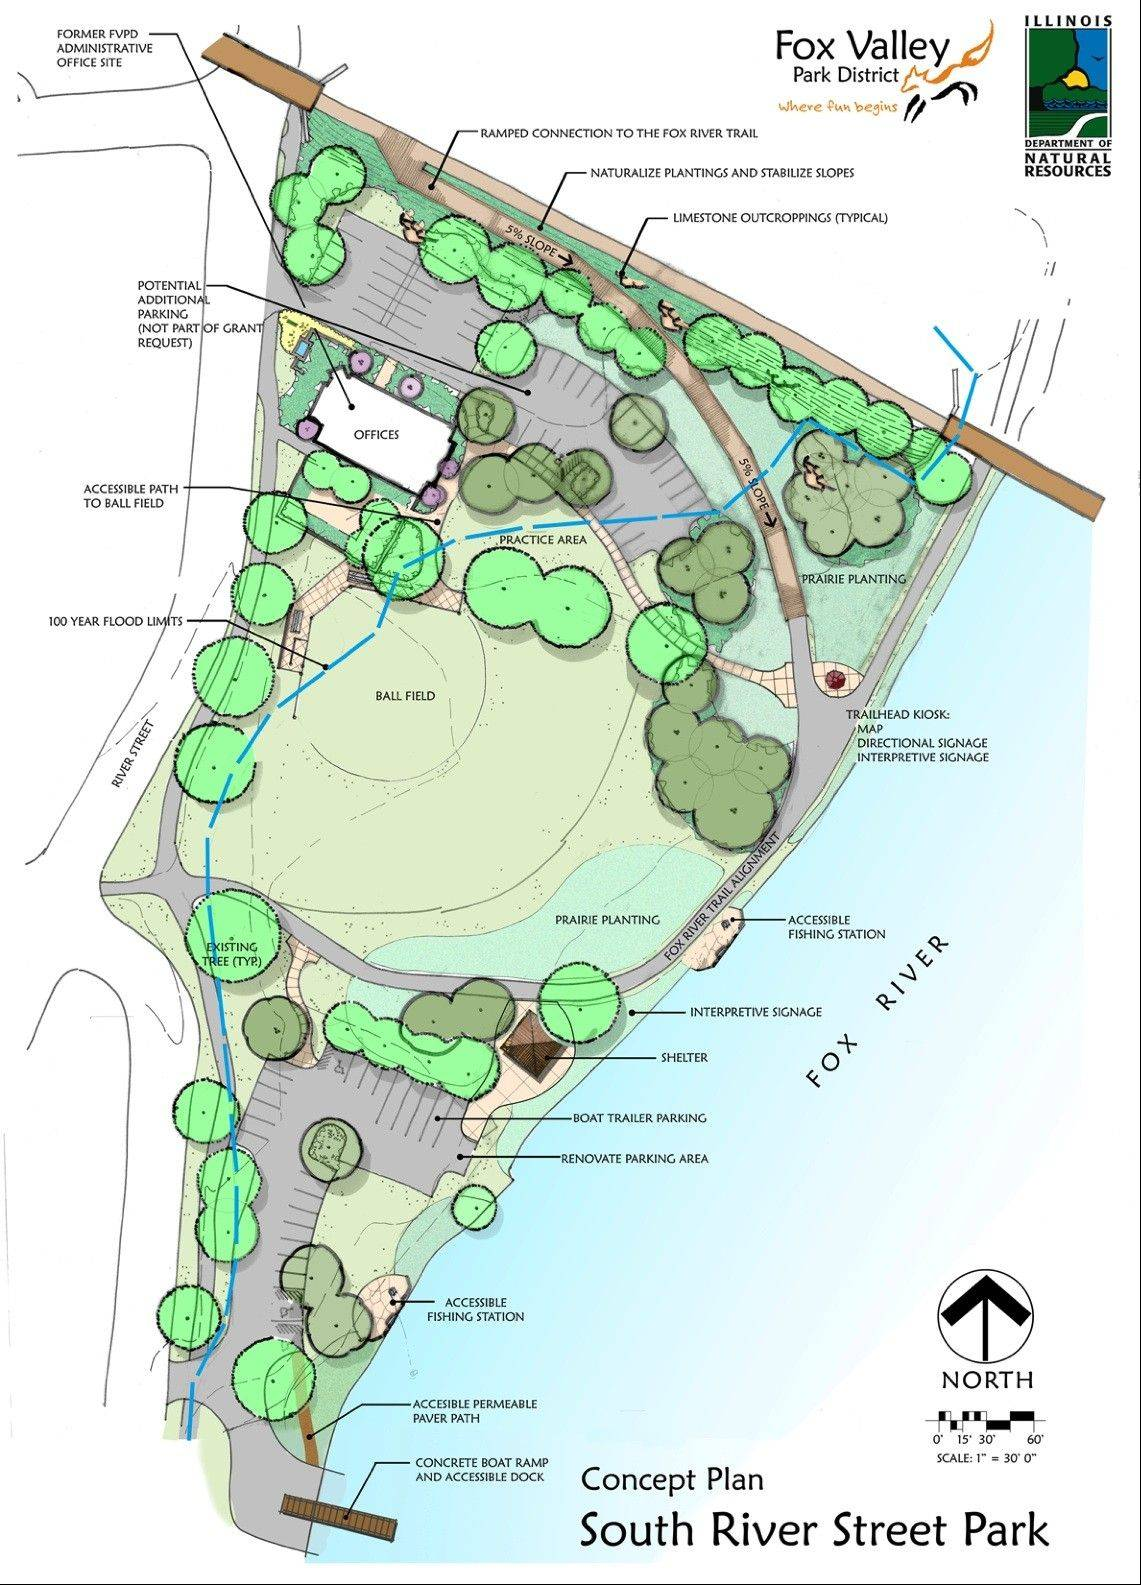 The Fox Valley Park District has been awarded a $217,200 grant by the Illinois Department of Natural Resources for the development of South River Street Park on the Fox River.